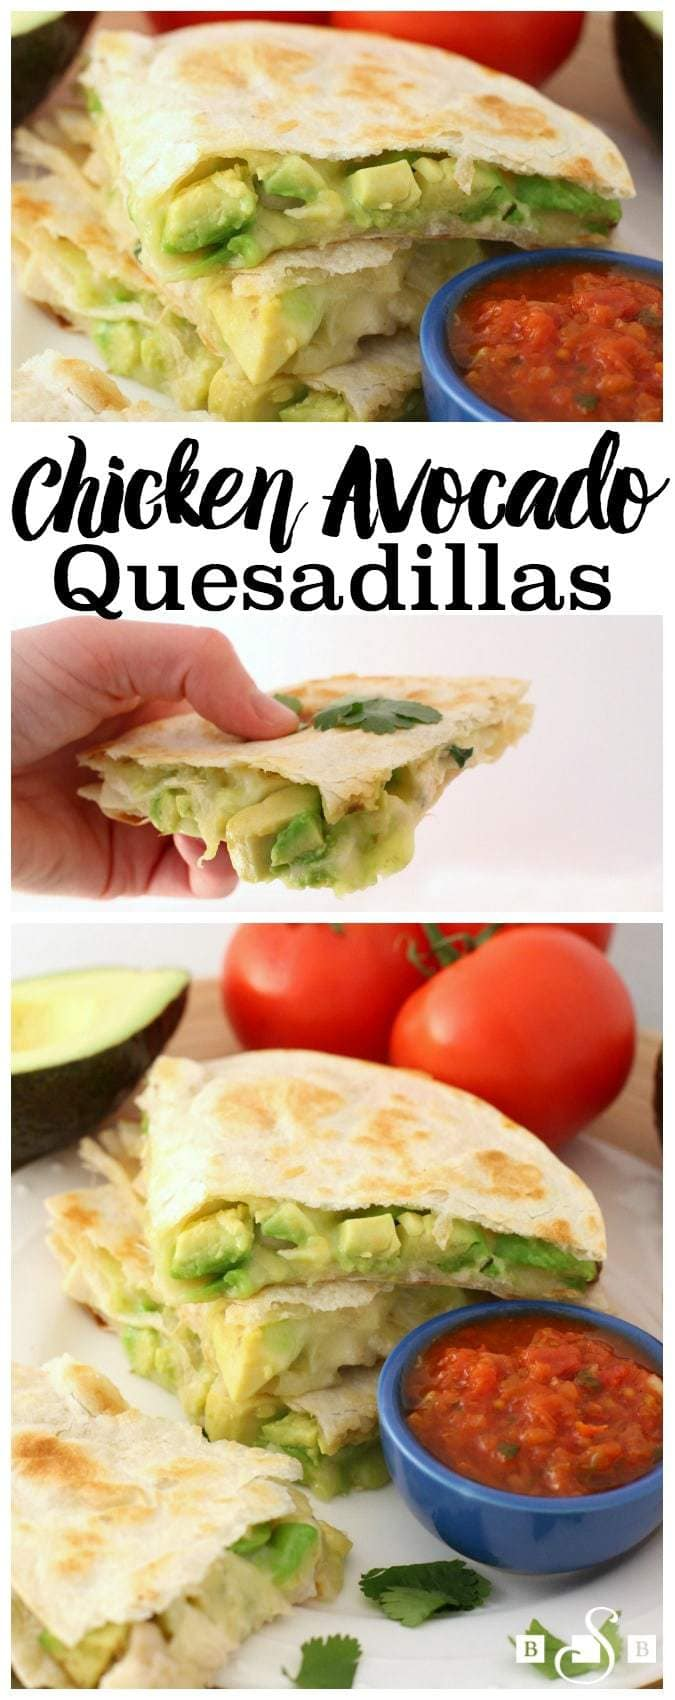 I made these amazing quesadillas and knew I had to share the recipe- they're SO good! These aren't your run-of-the-mill quesadillas either- they've got gooey cheese, big chunks of fresh avocado and chicken mixed with salsa, lime and cilantro. They're great as appetizers, but be prepared with enough- no one can eat just a few bites of these!